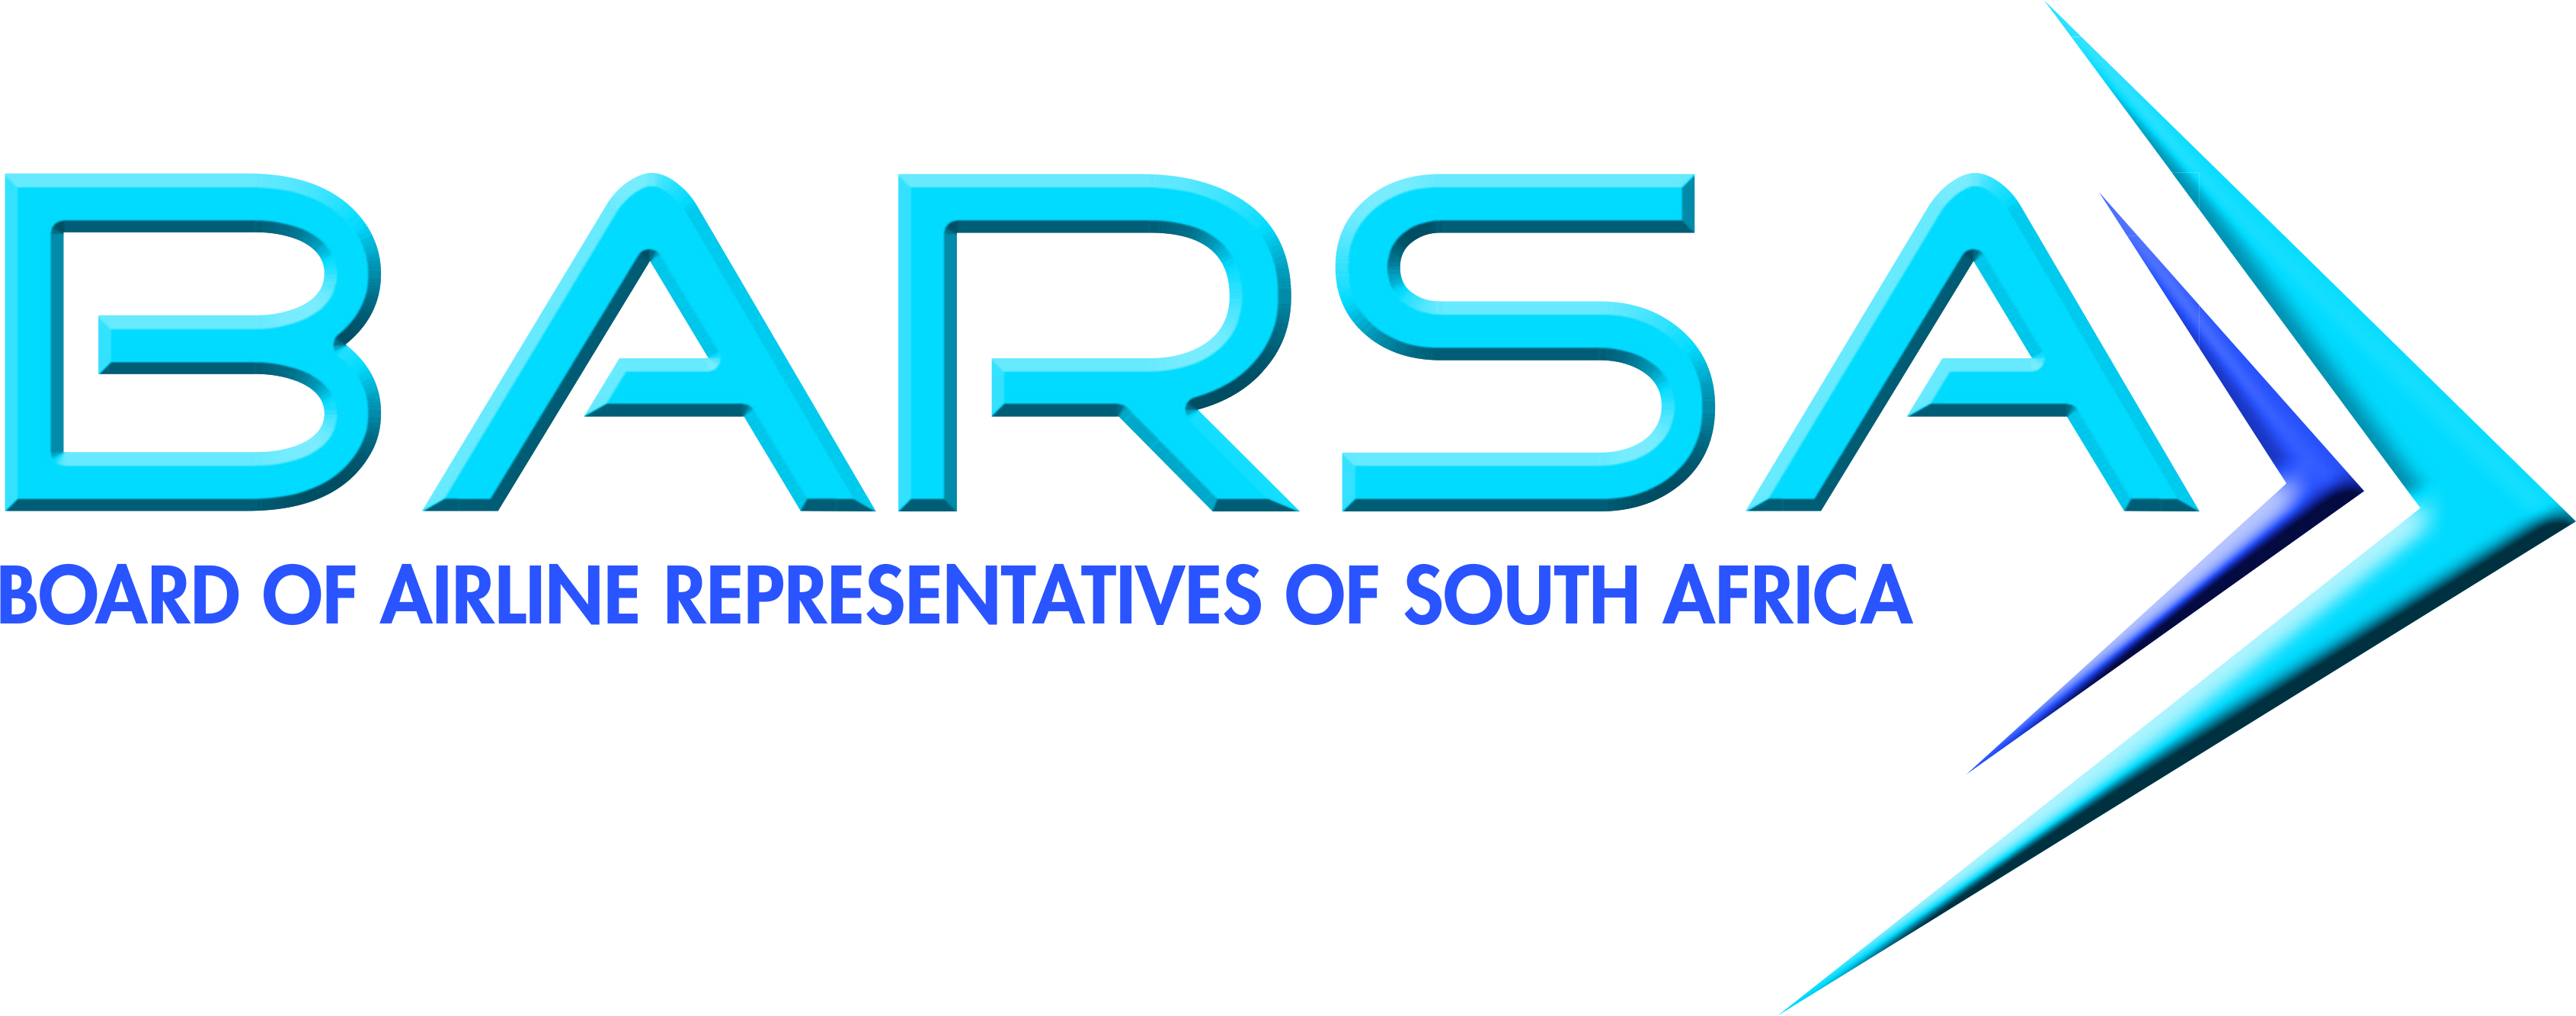 Board of Airline Representatives of South Africa (BARSA), Sandton, South Africa